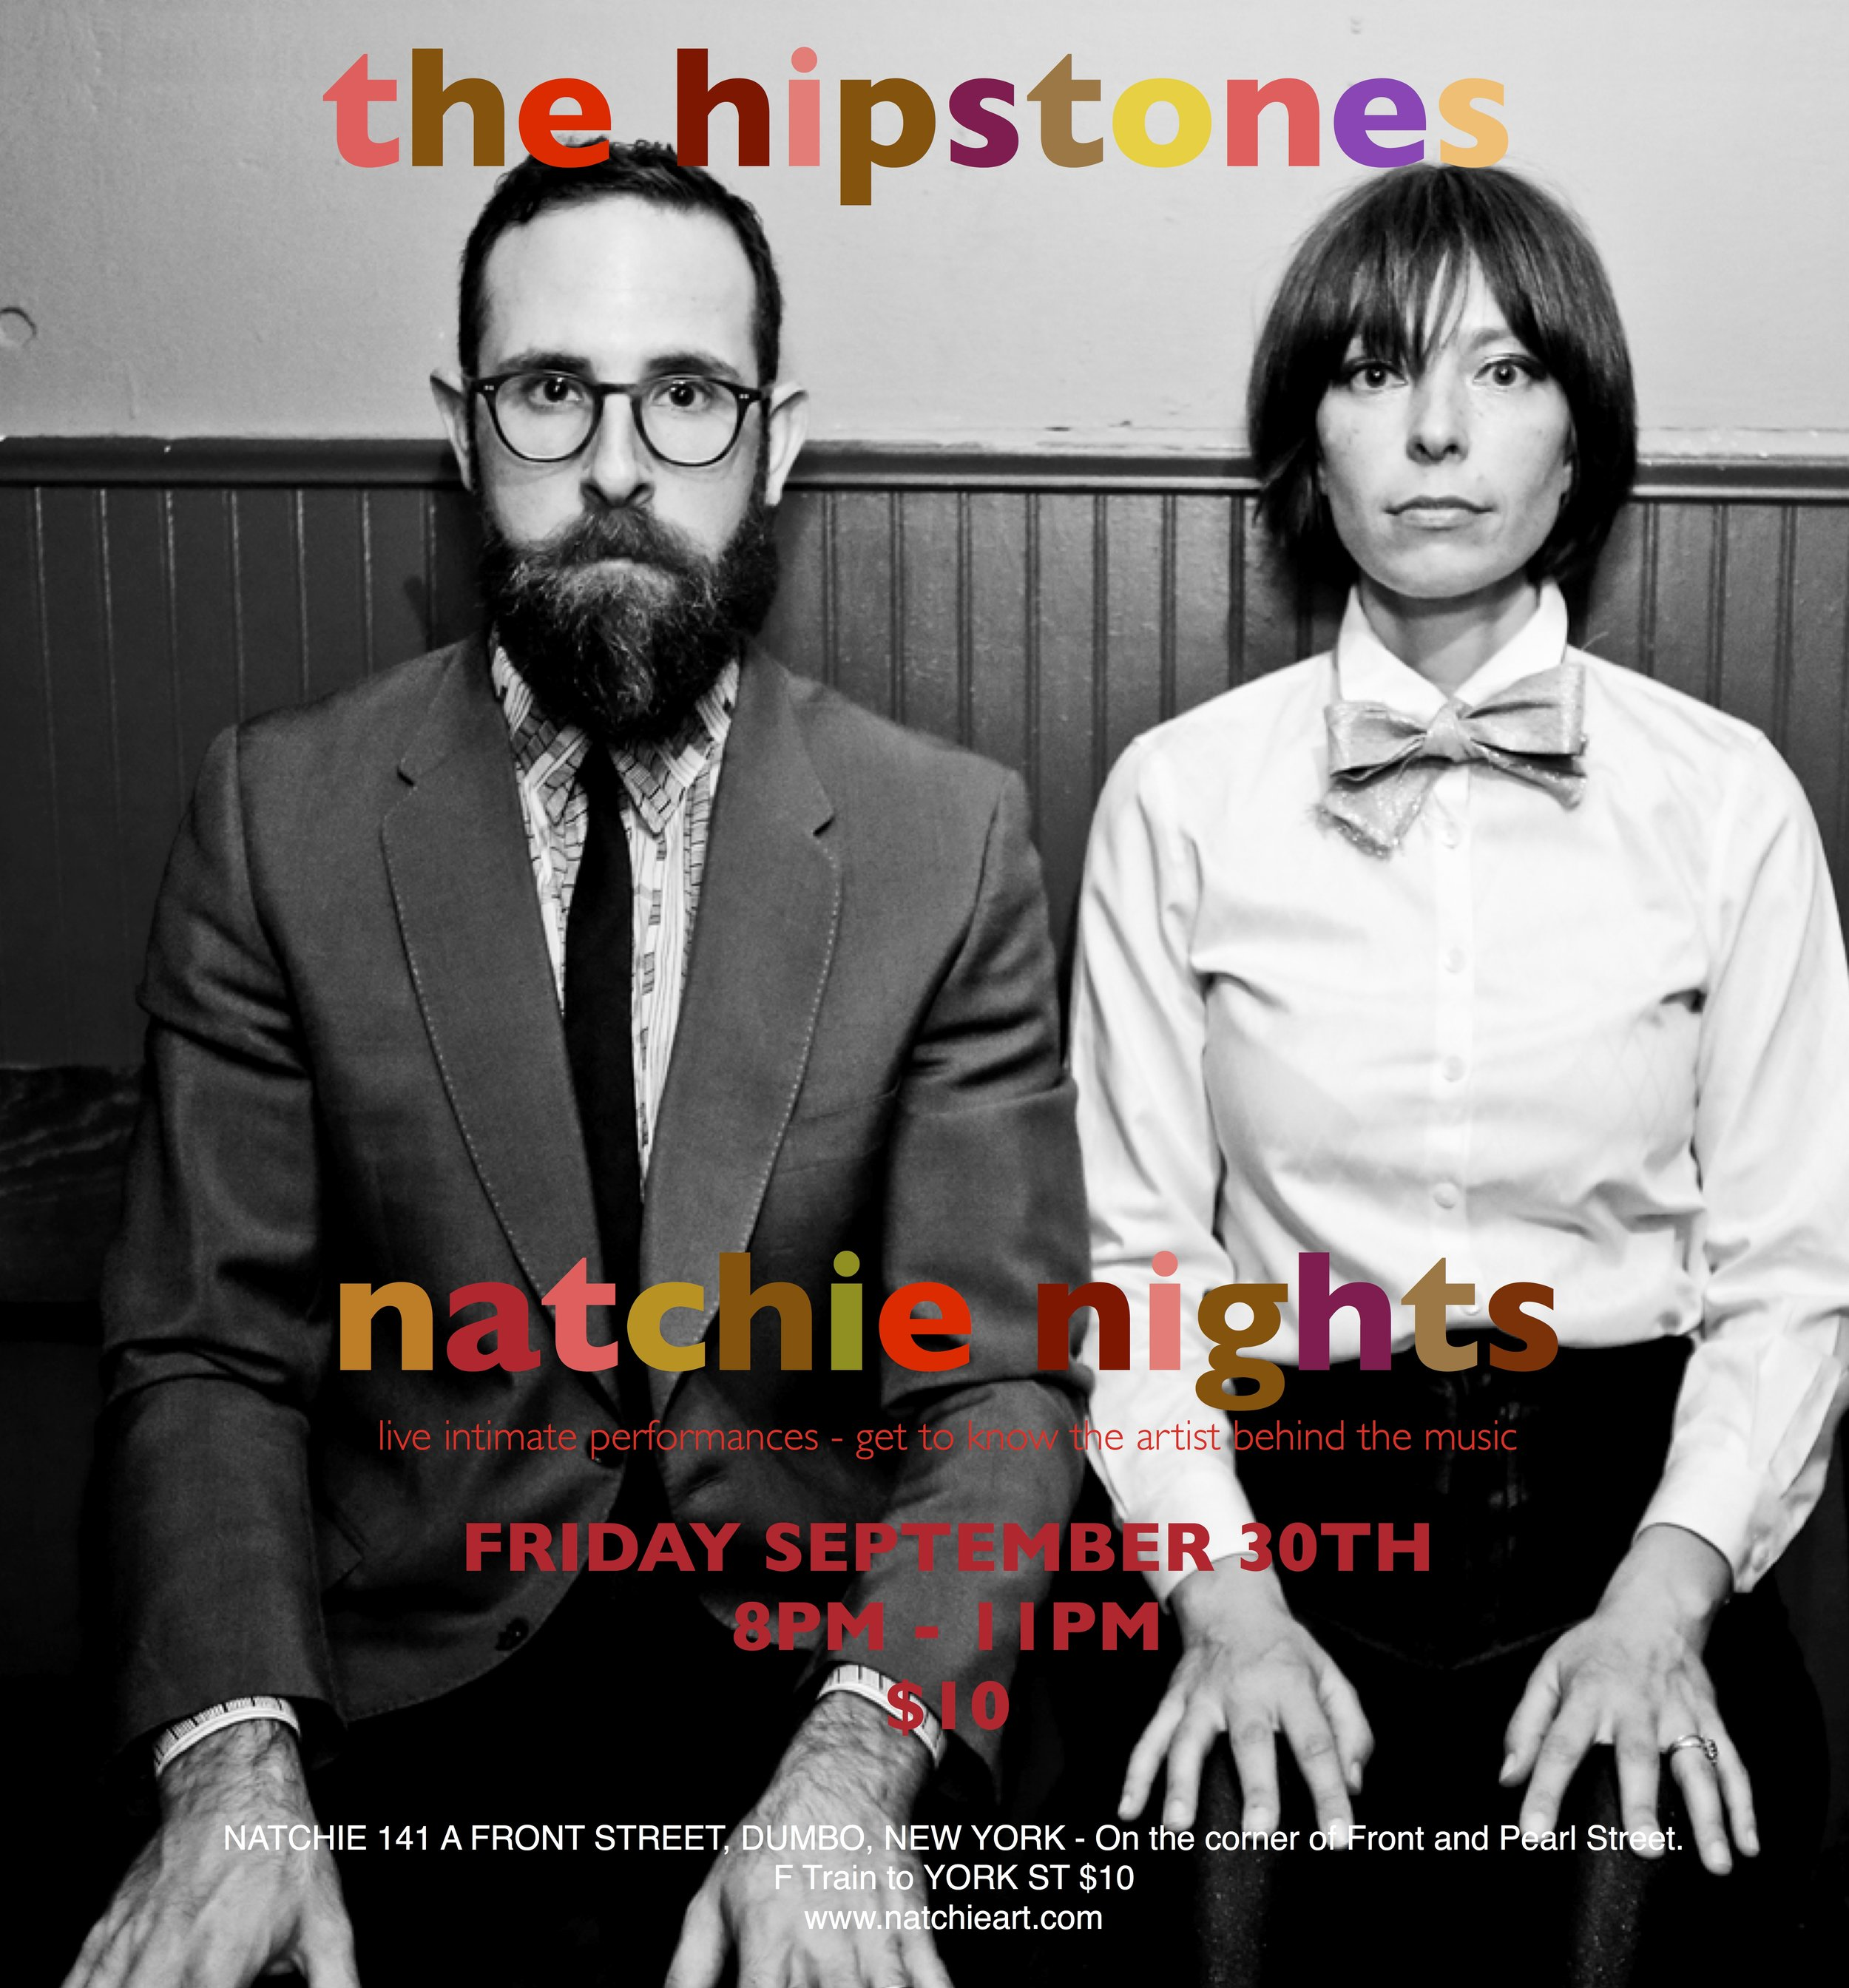 Natchie Nights Fall Series - Hipstones.jpg